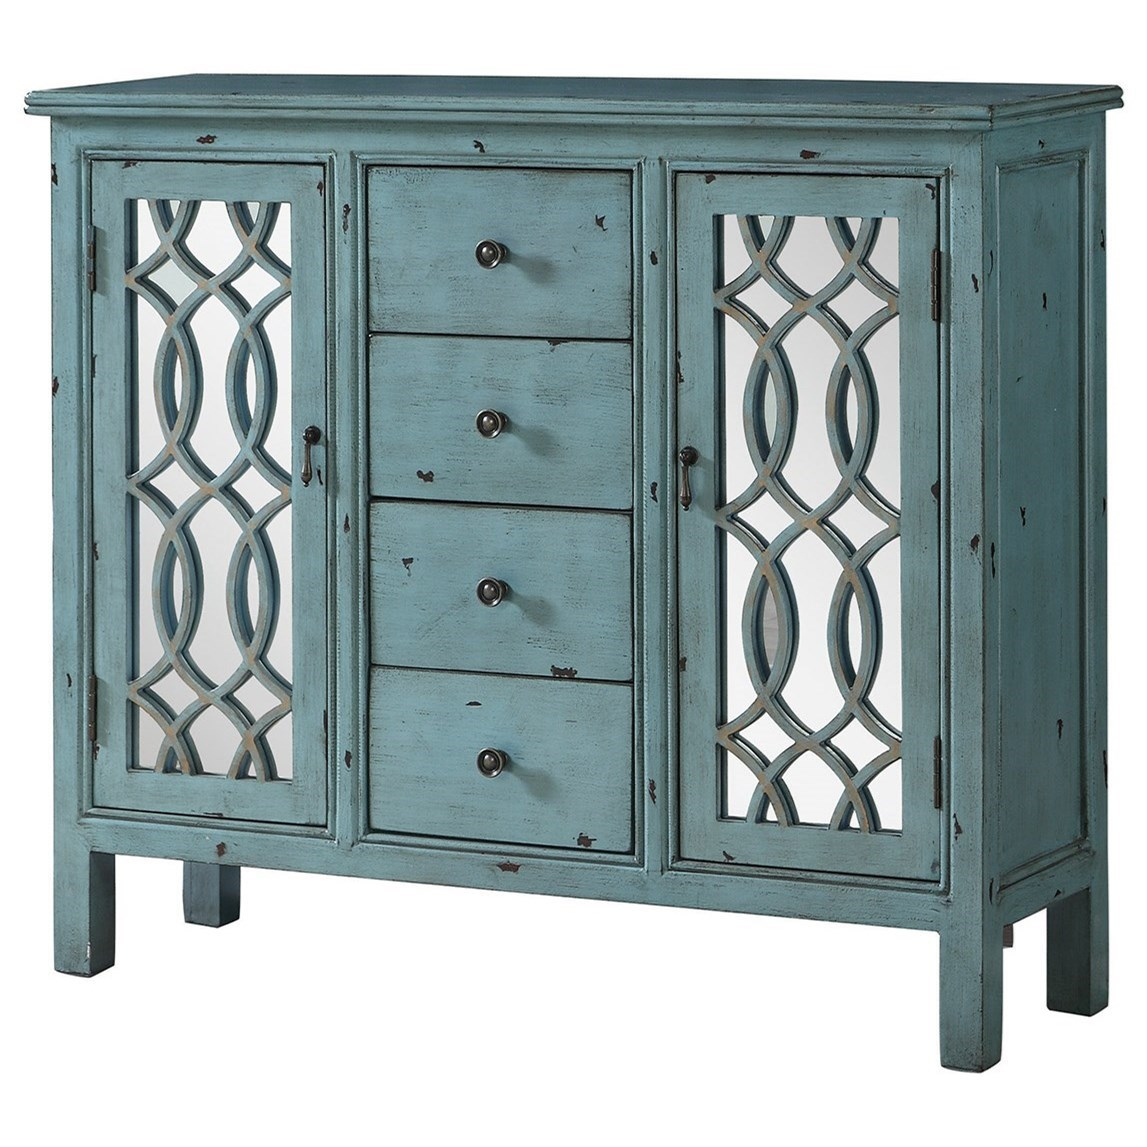 coaster accent cabinets antique blue table with inlay products color teal front porch furniture sets piece patio dining set diy umbrella stand ikea storage pedestal kitchen